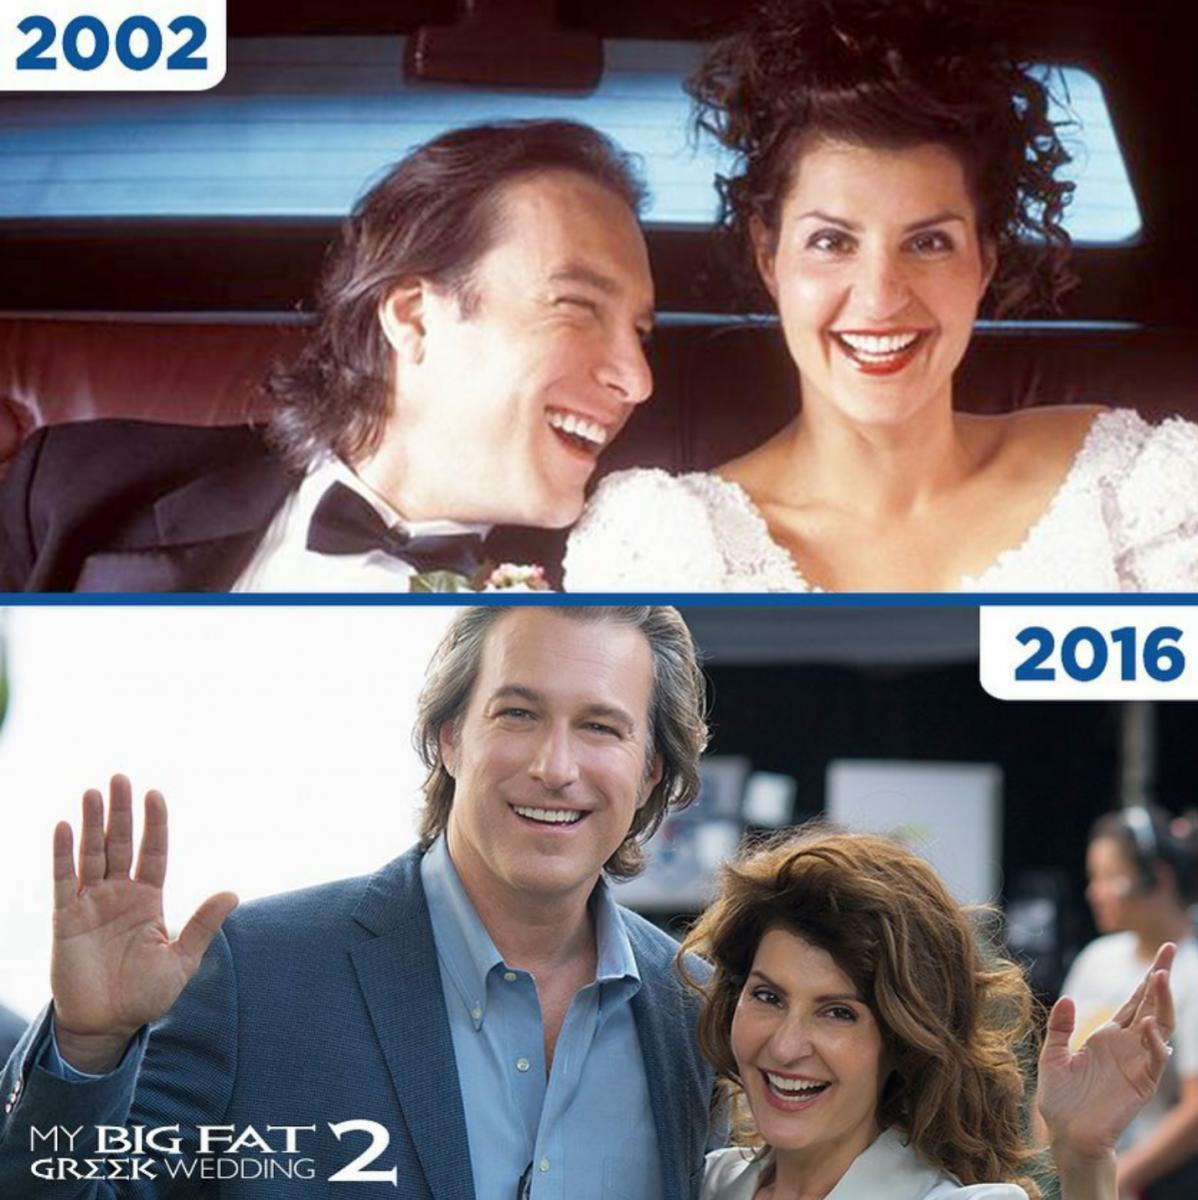 My Big Fat Greek Wedding 2.Image Gallery For My Big Fat Greek Wedding 2 Filmaffinity